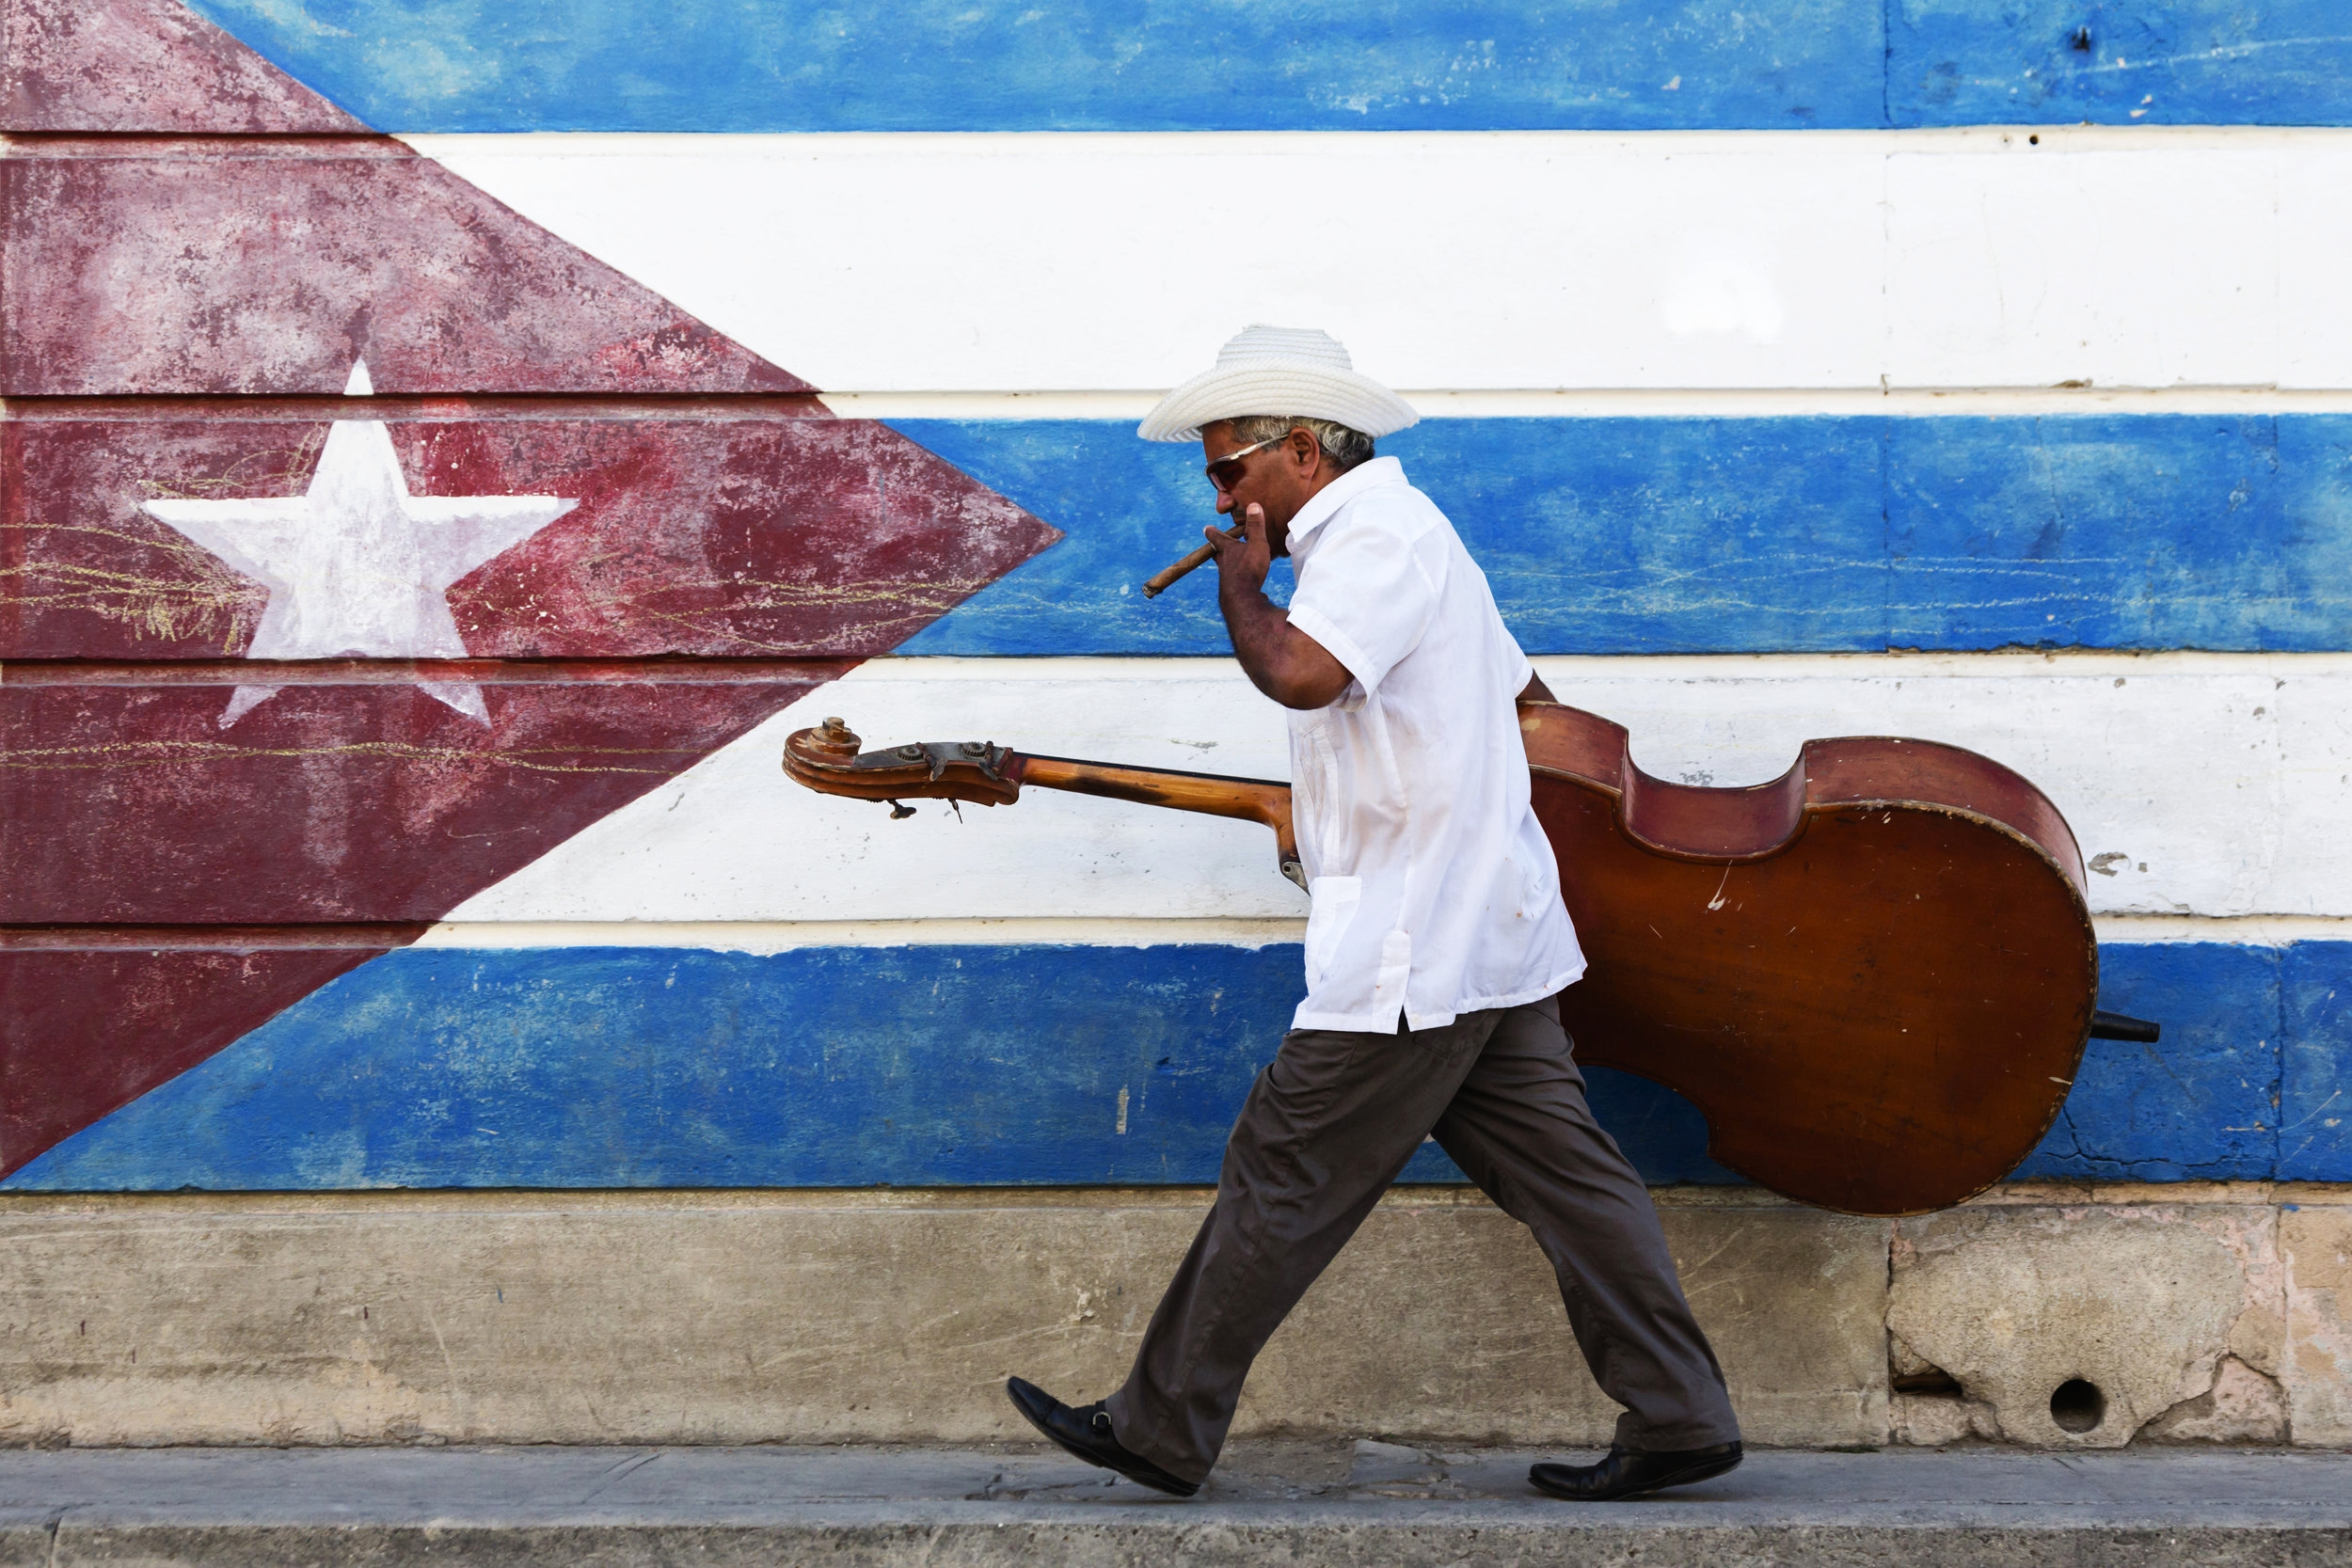 My Amigo in CUBA   Experience it now, so you are the one telling the story